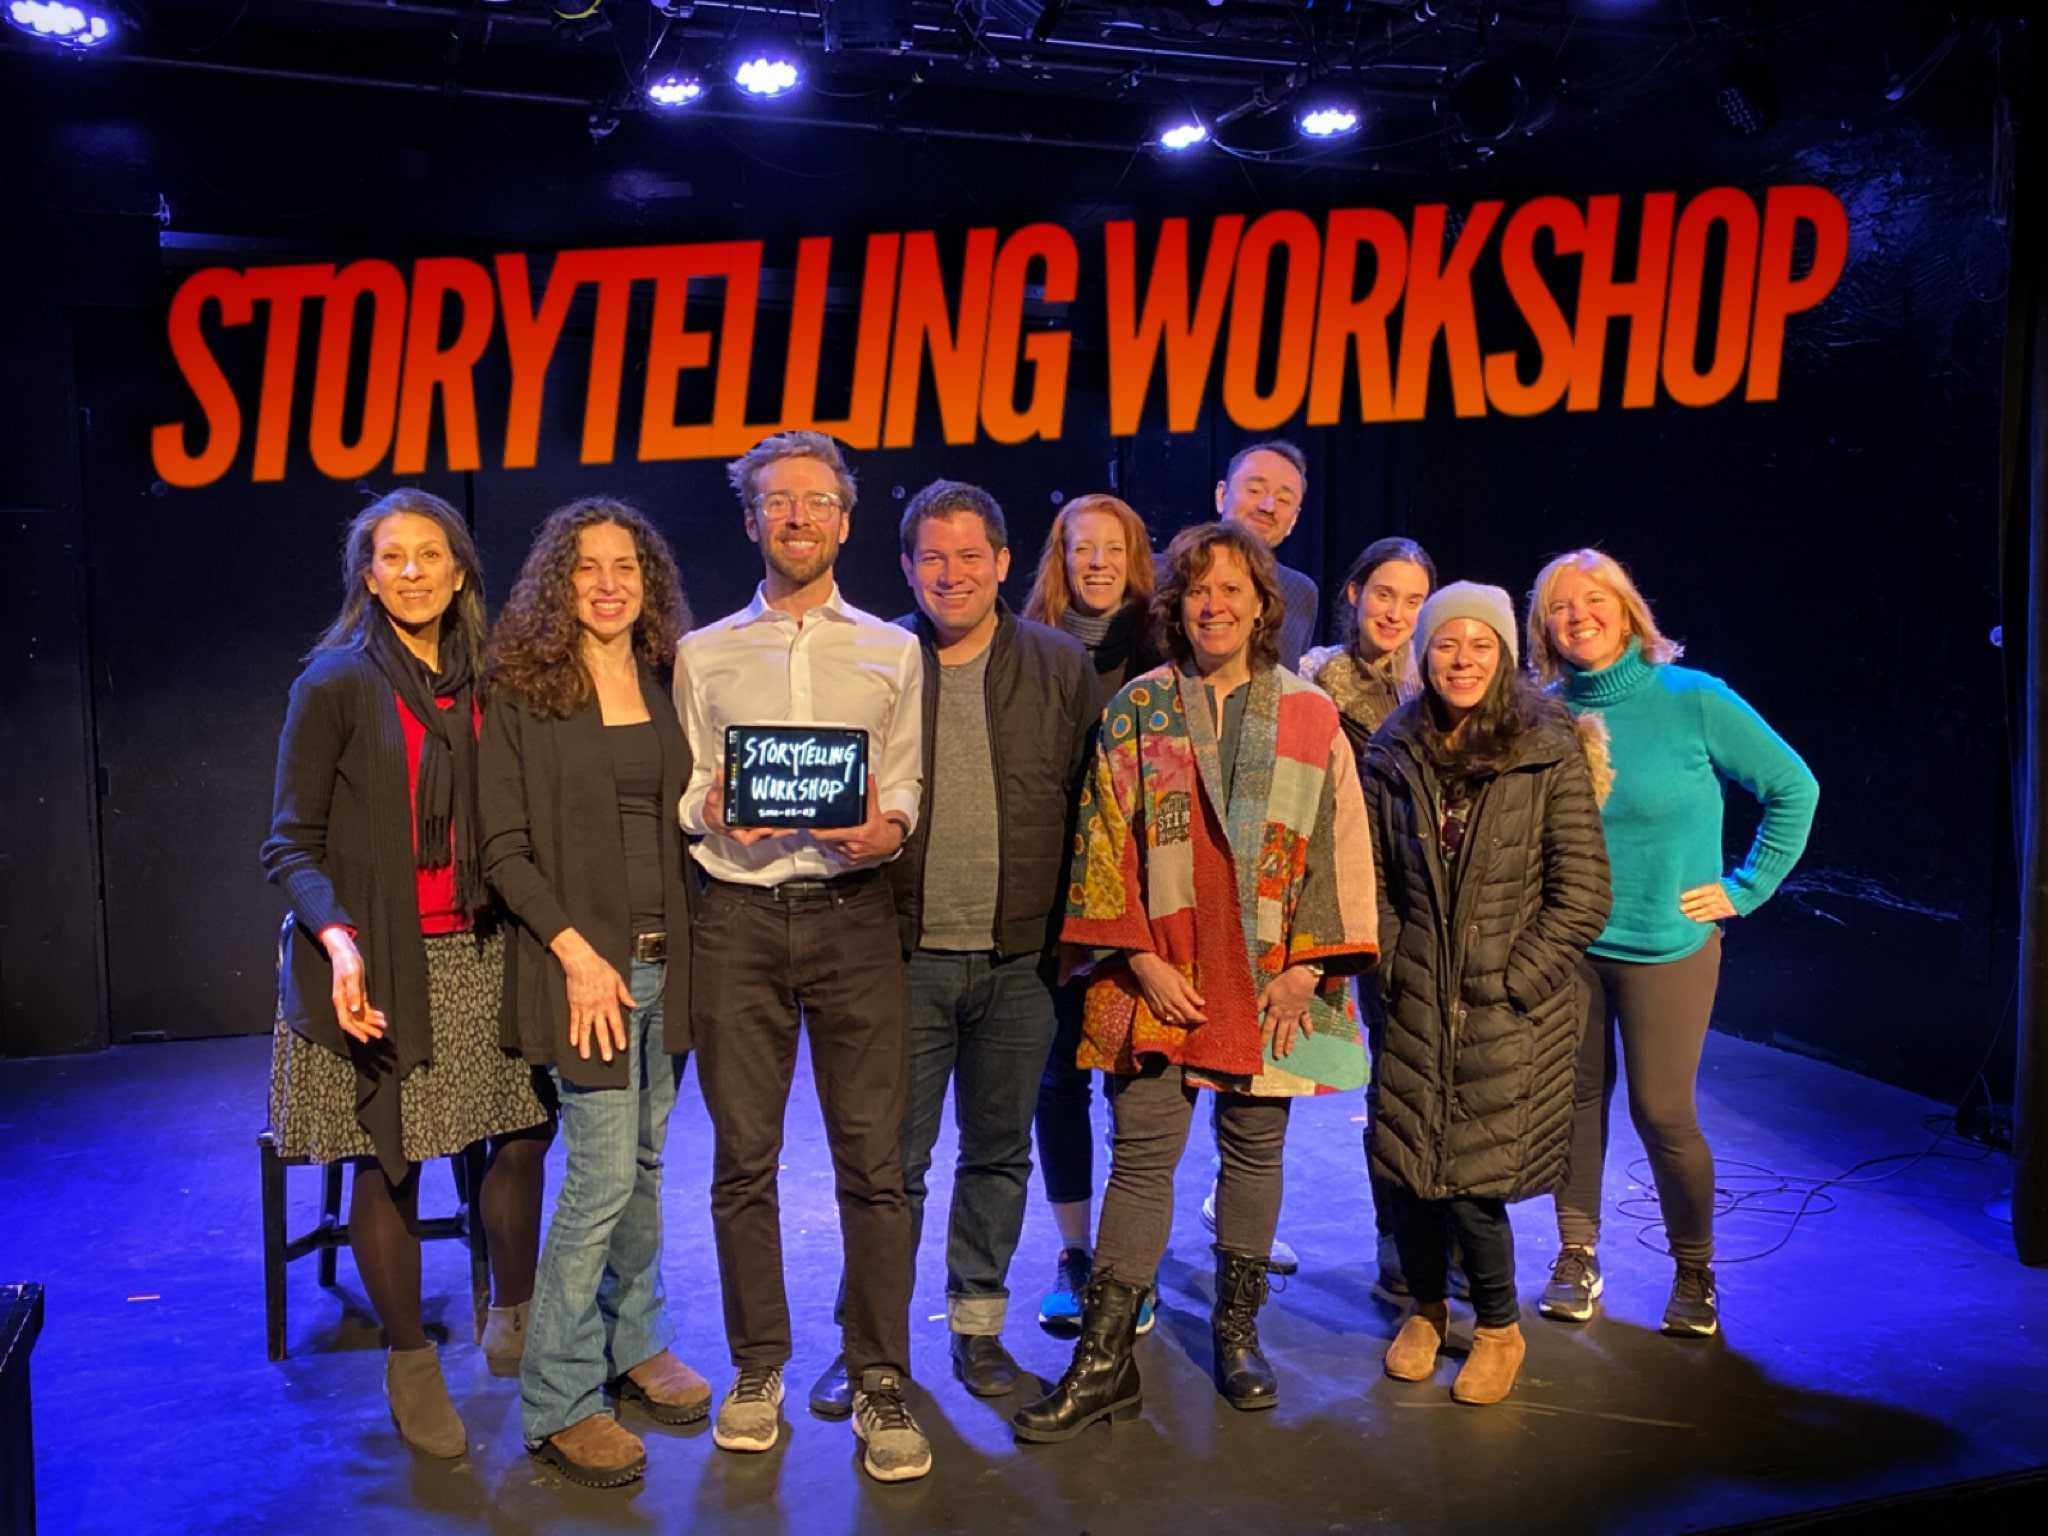 Storytelling Workshop for Business Master Class hosted by The Story Studio in NYC